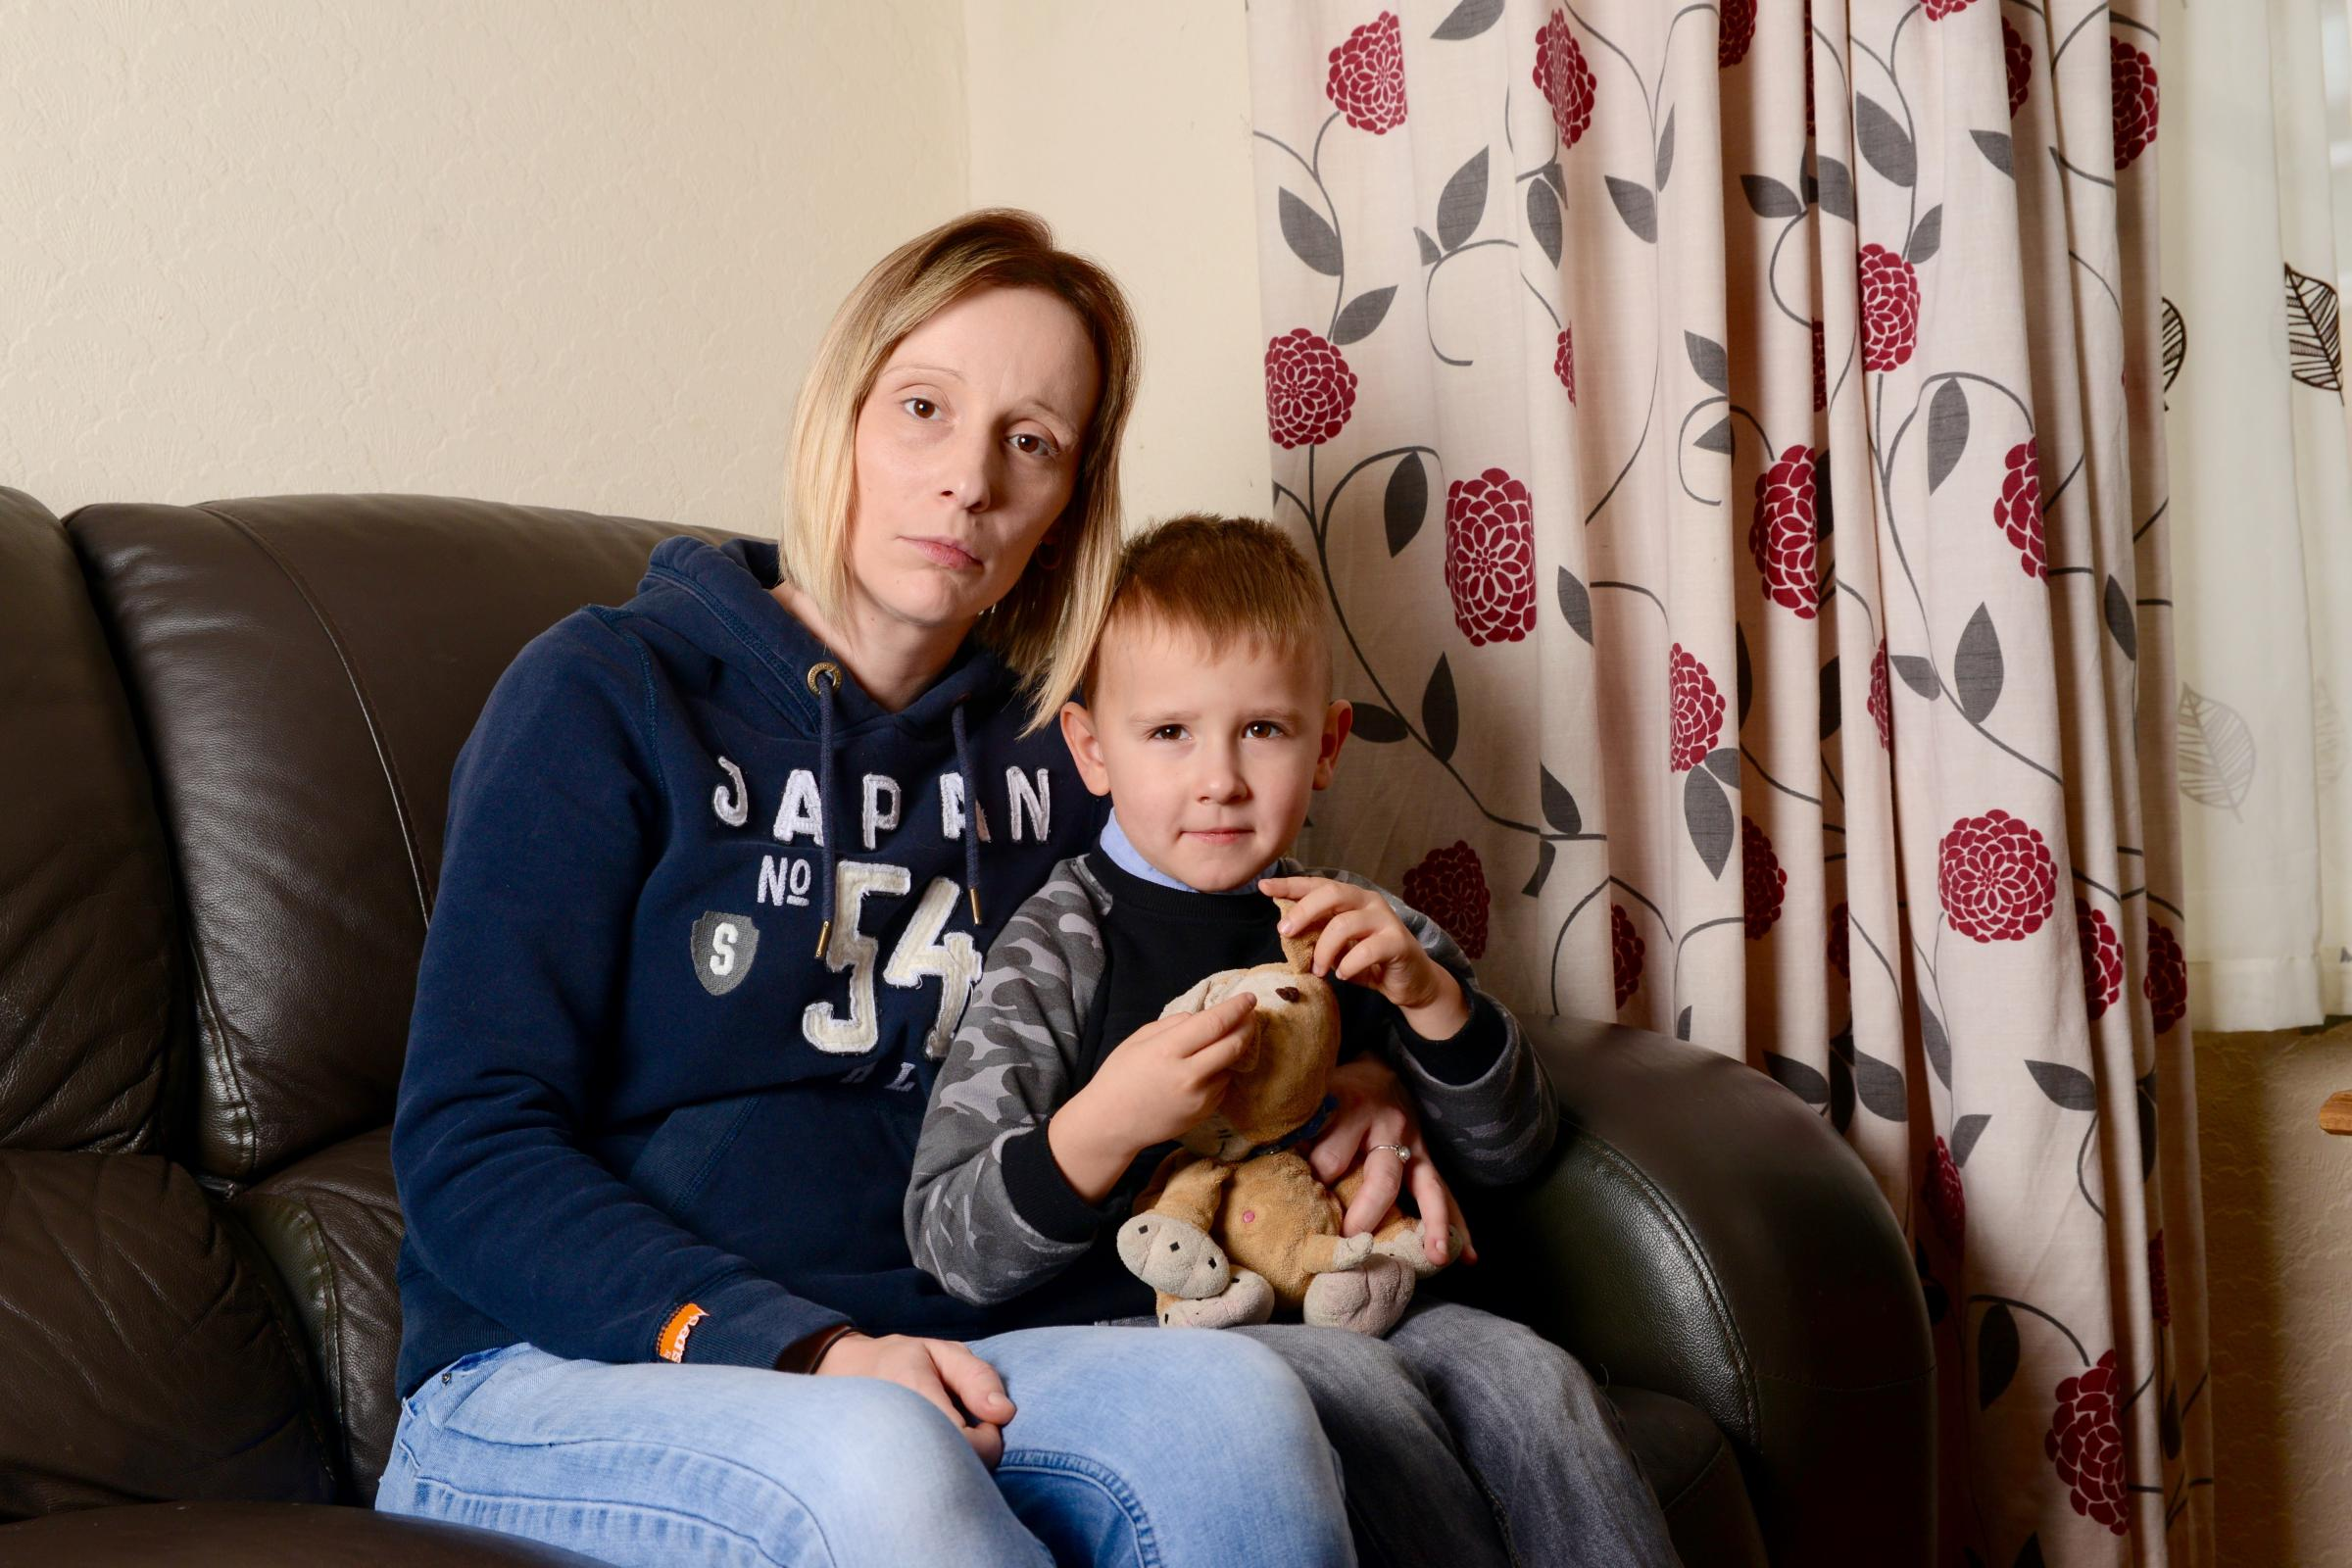 INCIDENT: Claire Frost with her four-year-old son, Connor, at their home on Gordon Road